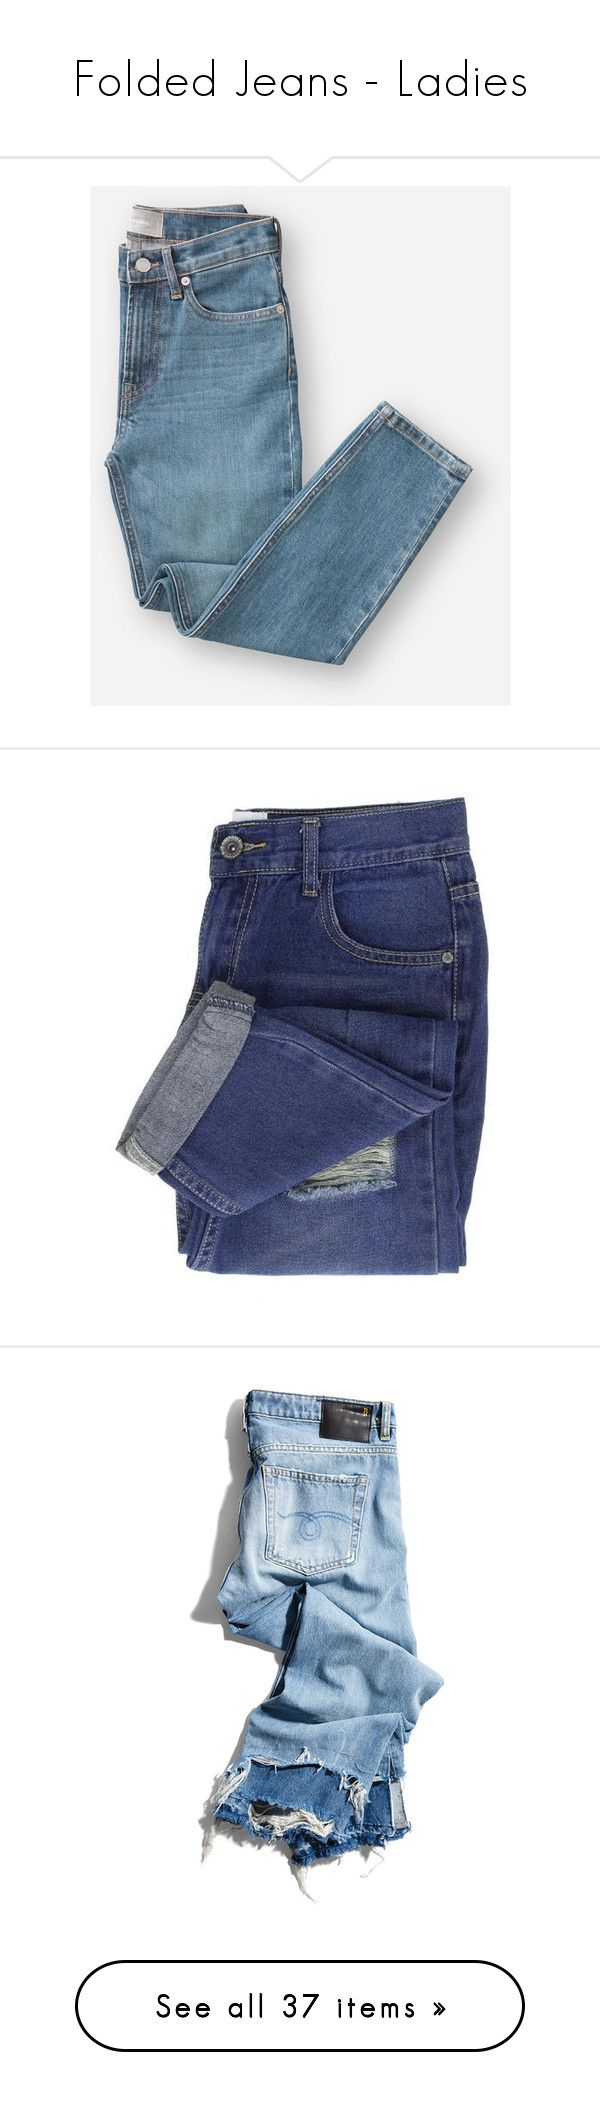 """""""Folded Jeans - Ladies"""" by tlb0318 ❤ liked on Polyvore featuring jeans, mid blue, boyfriend fit jeans, blue boyfriend jeans, wide leg blue jeans, wet look jeans, boyfriend jeans, blue ripped jeans, destructed boyfriend jeans and denim jeans"""